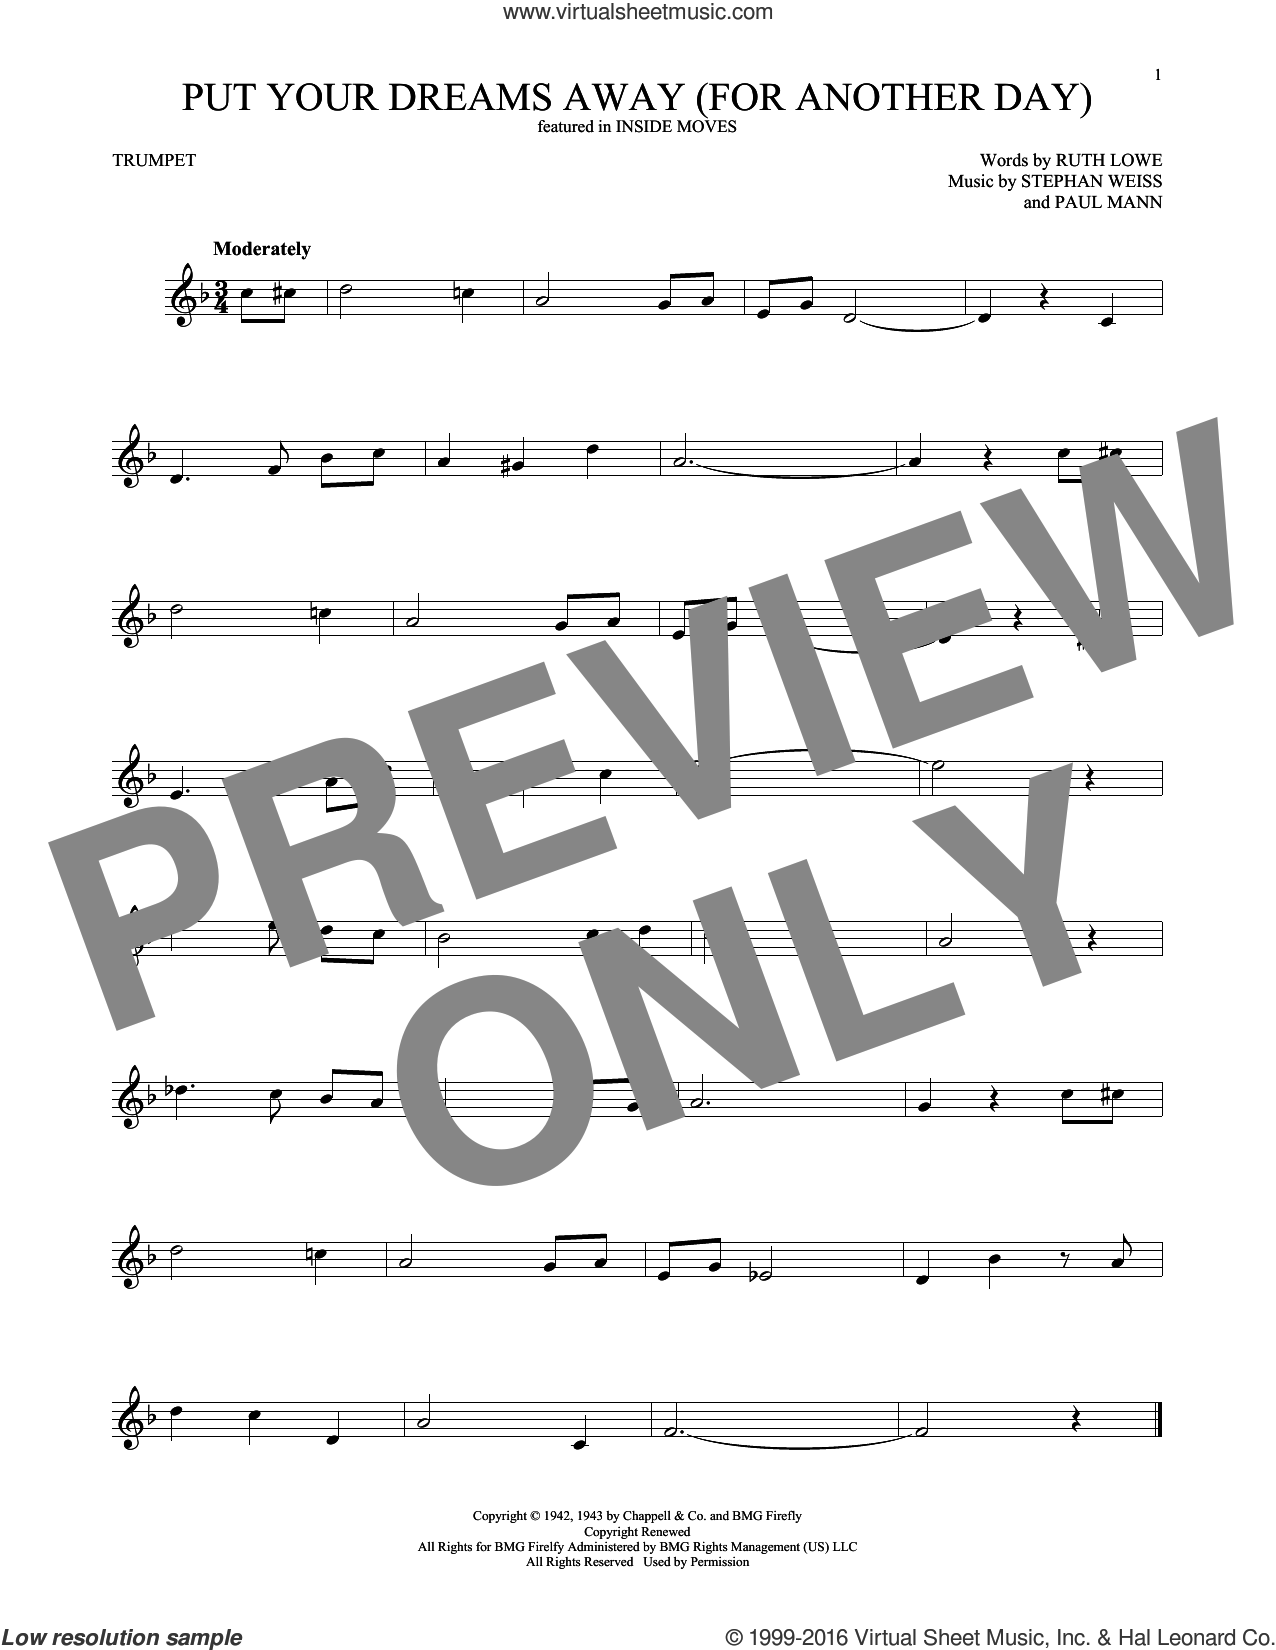 Put Your Dreams Away (For Another Day) sheet music for trumpet solo by Stephen Weiss